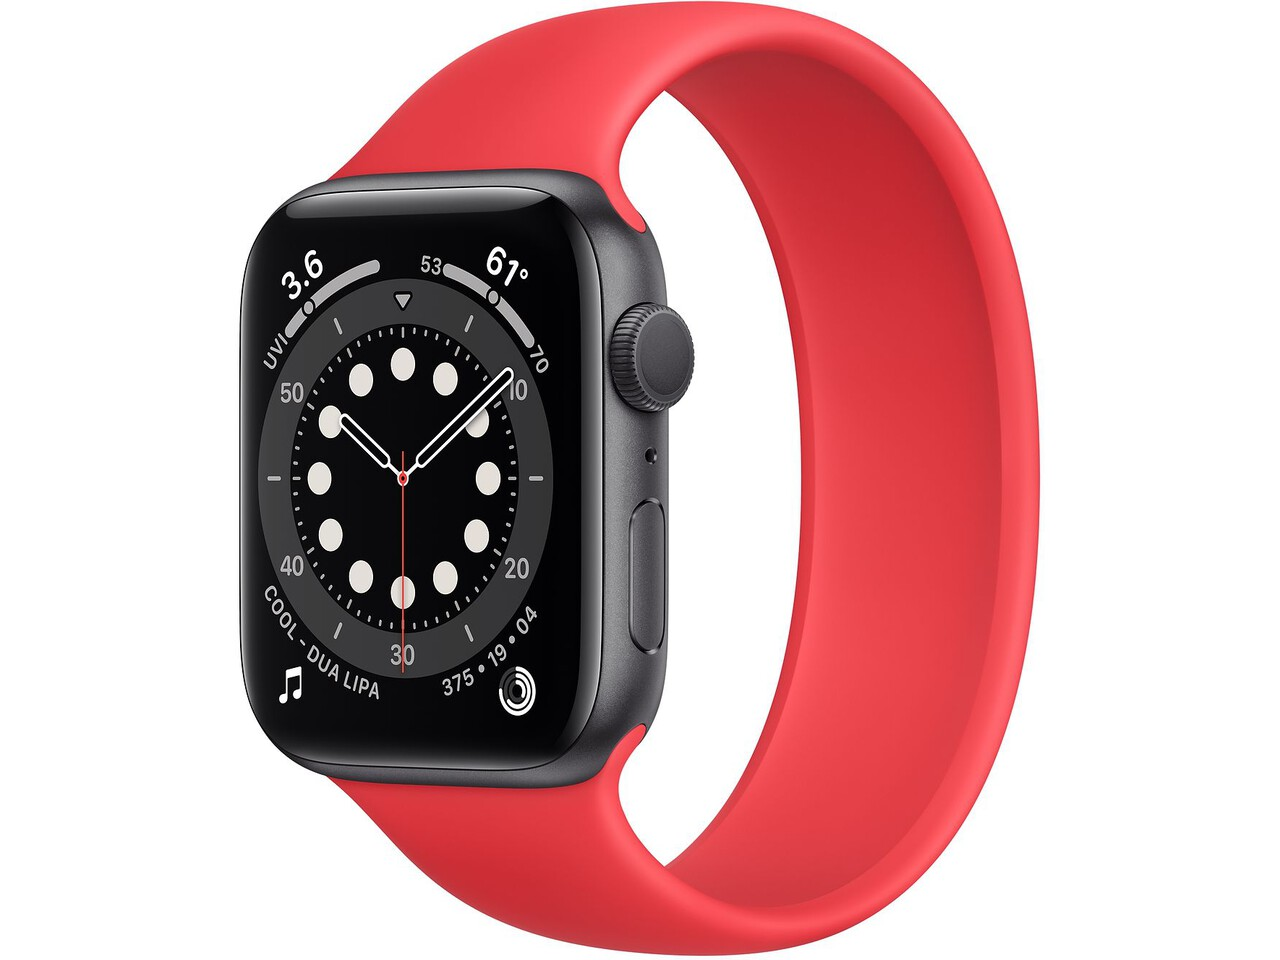 apple watch series 6 44mm space gray aluminum red solo loop